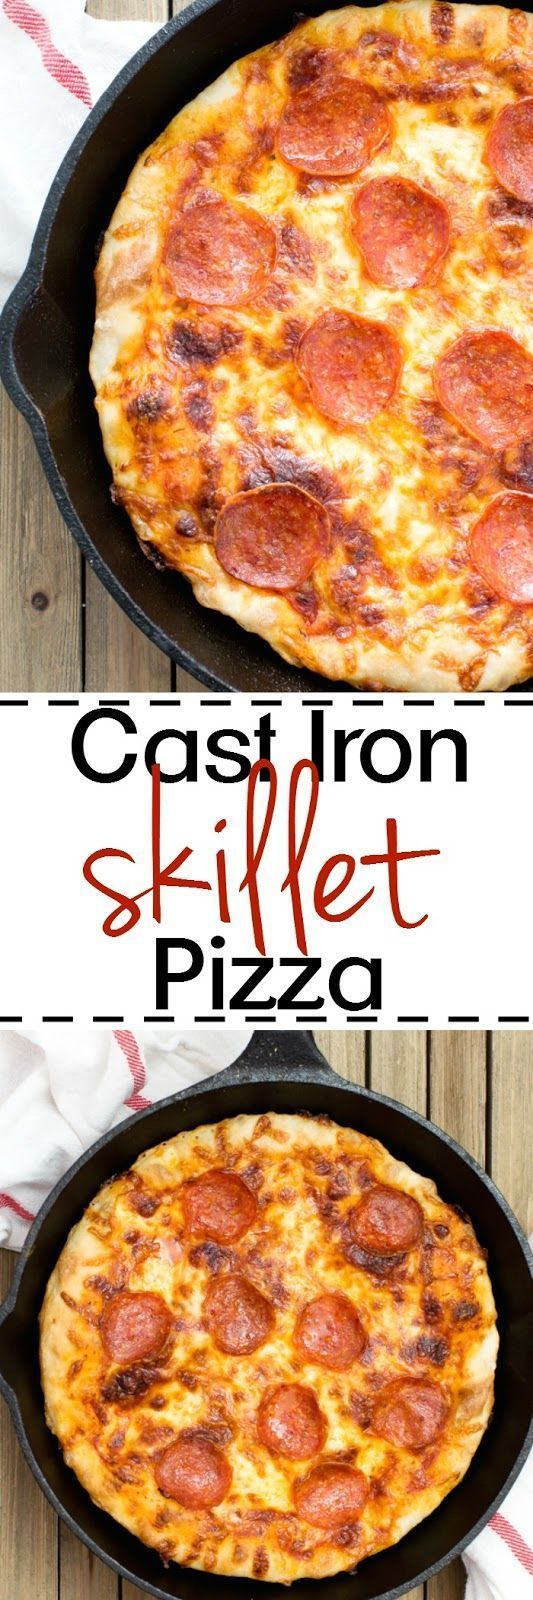 Cast Iron Skillet Pizza